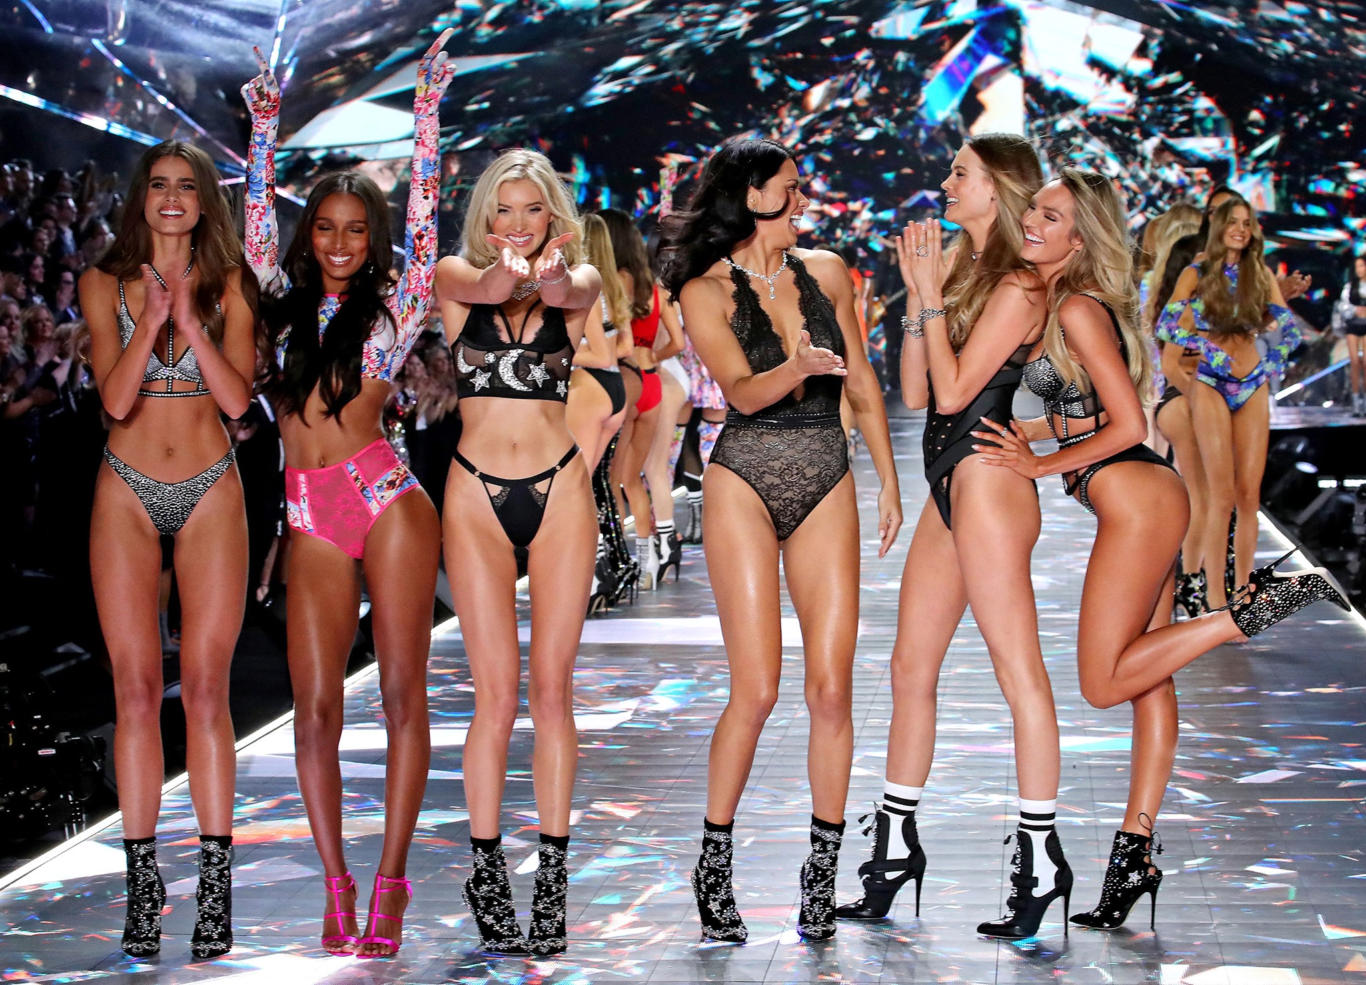 Victoria's Secret Hot Babes HD Wallpaper